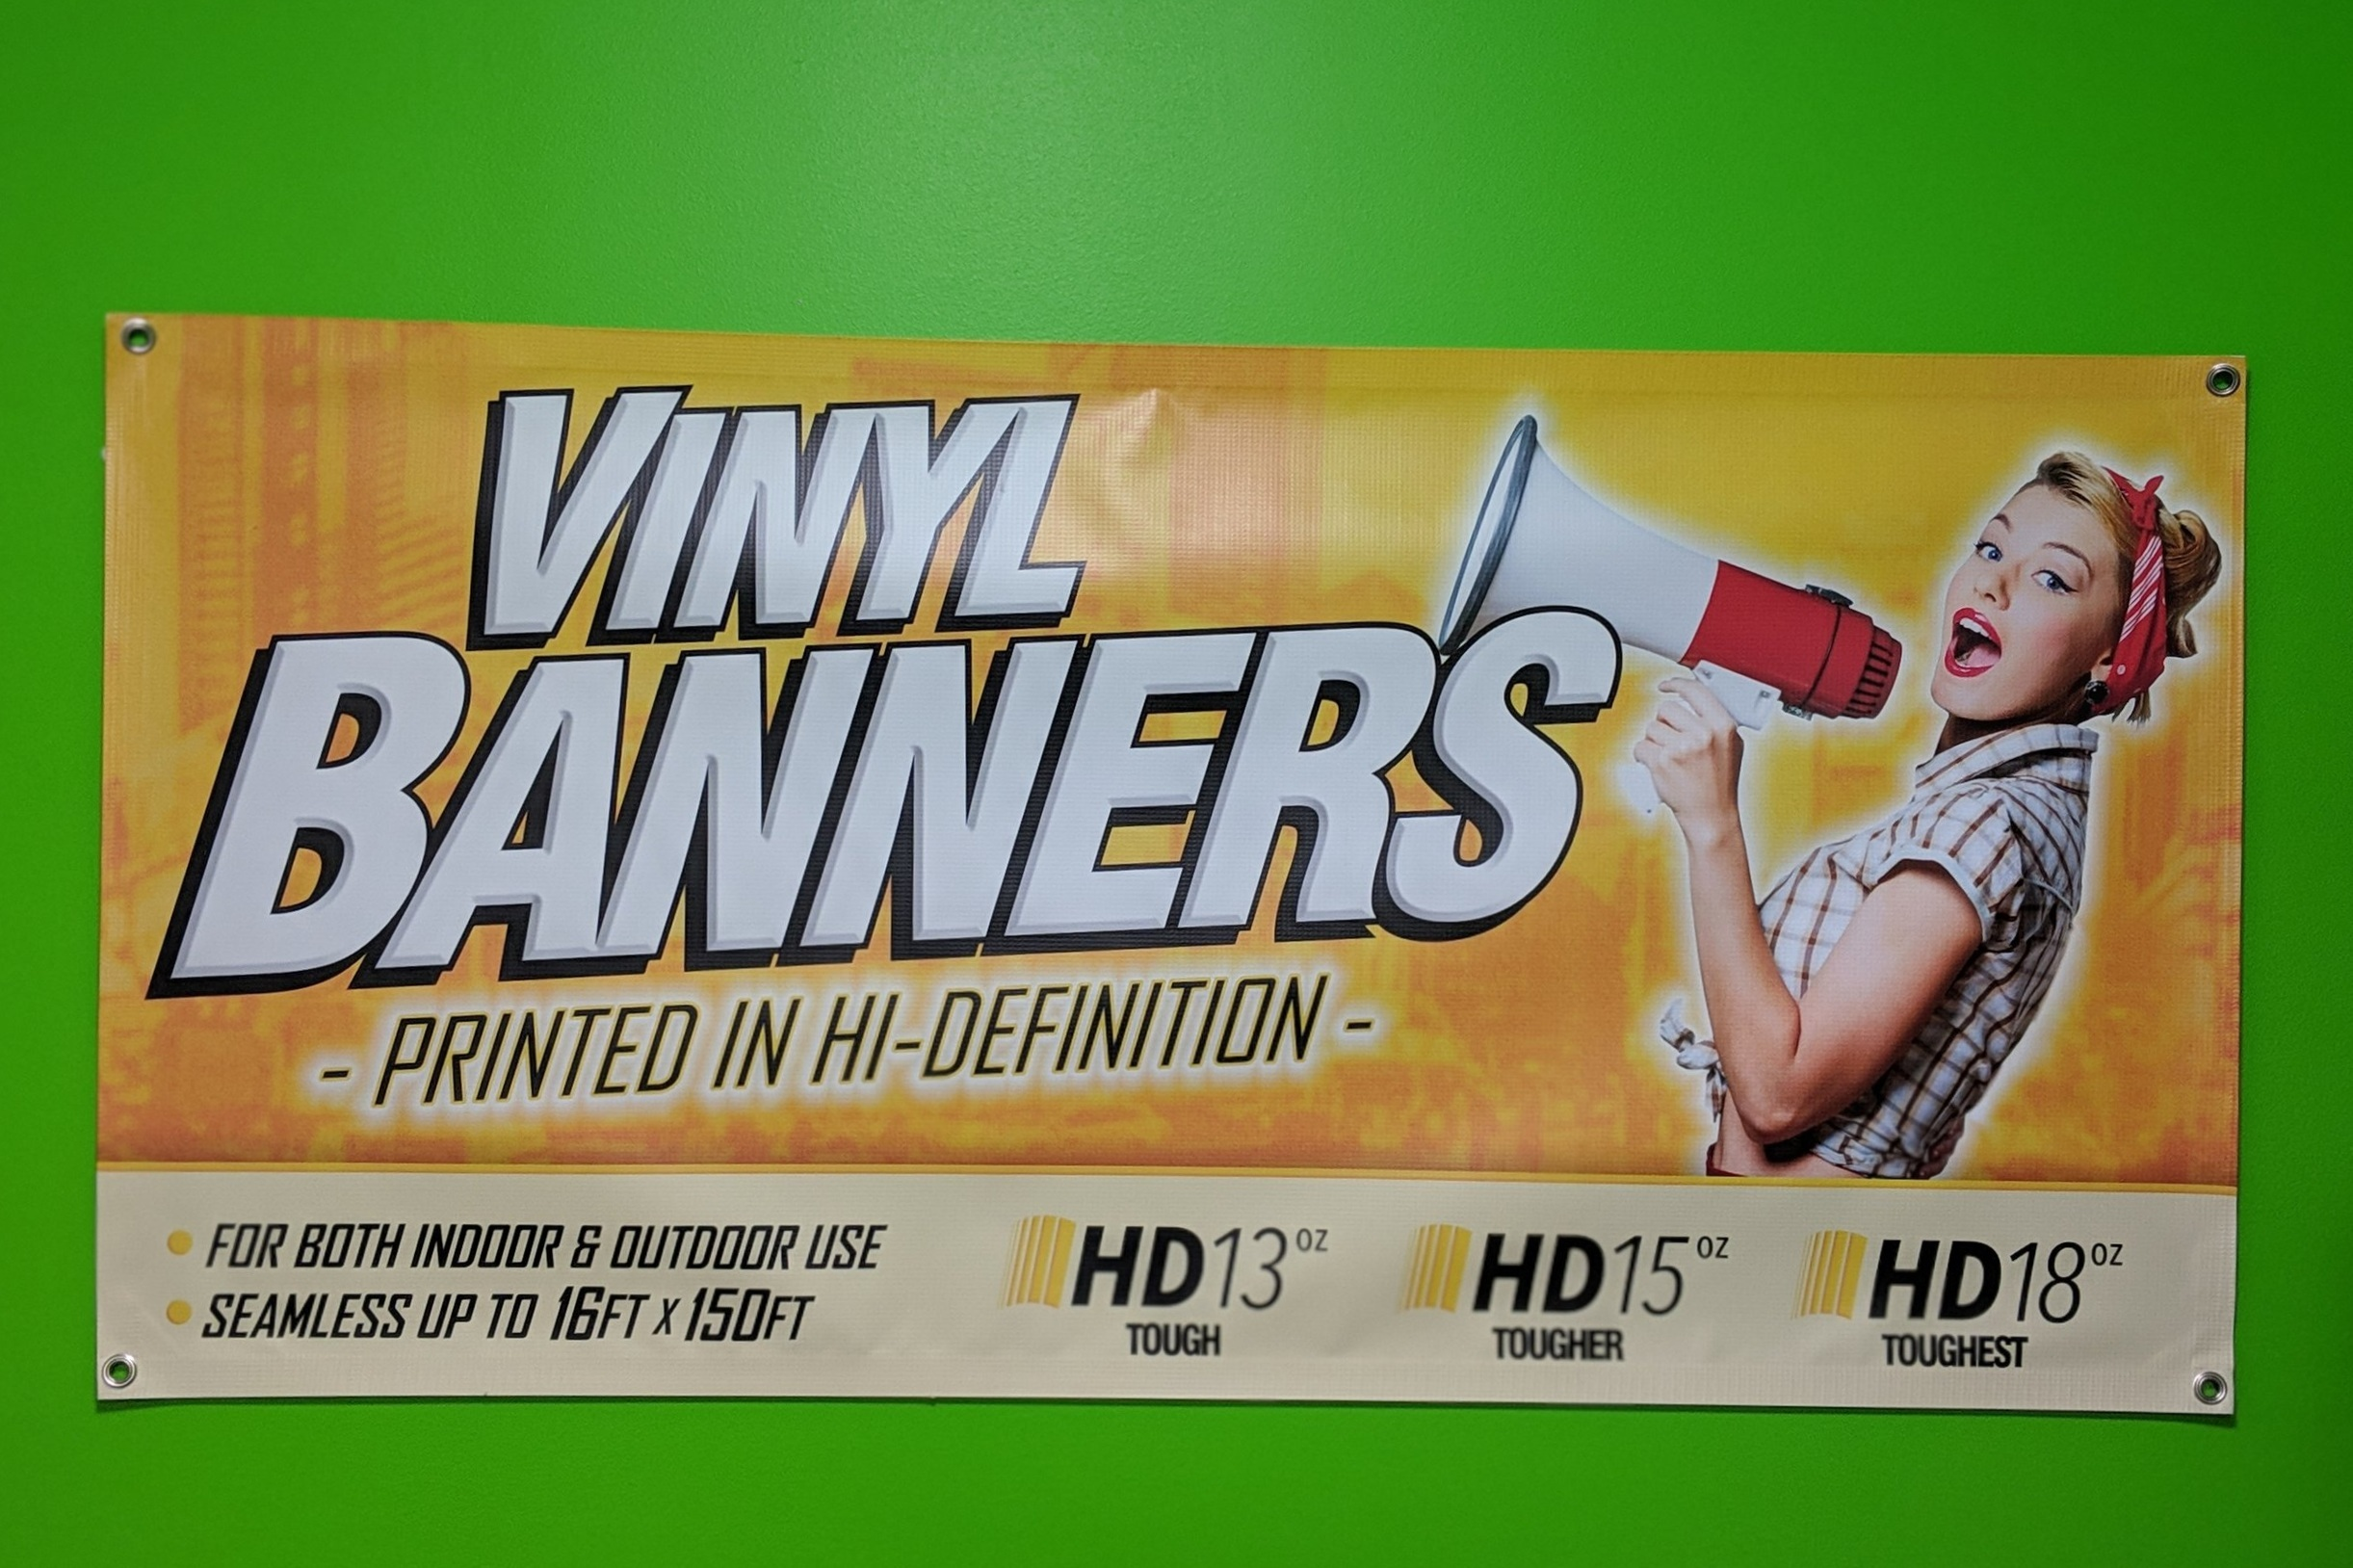 Vinyl Banners - Full color custom banners with reinforced edges.Great for Indoor or Outdoor use.Custom size banners are available.We also offer wrinkle-free dye sublimated banners.